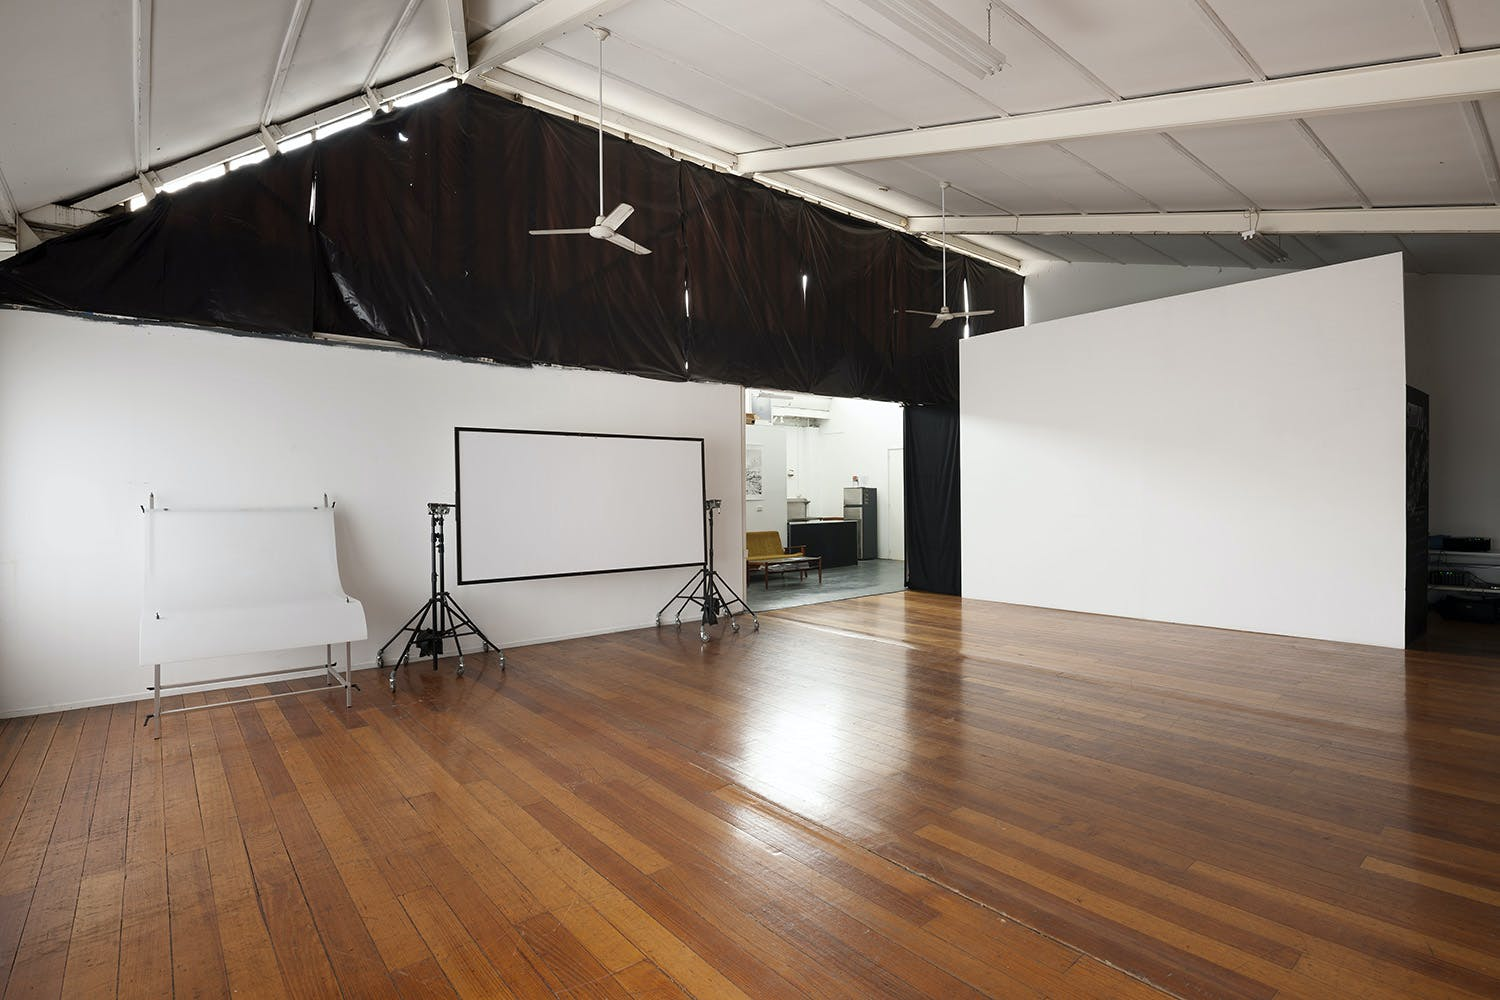 Suite 2 Photography Studio, creative studio at dianna snape, image 1